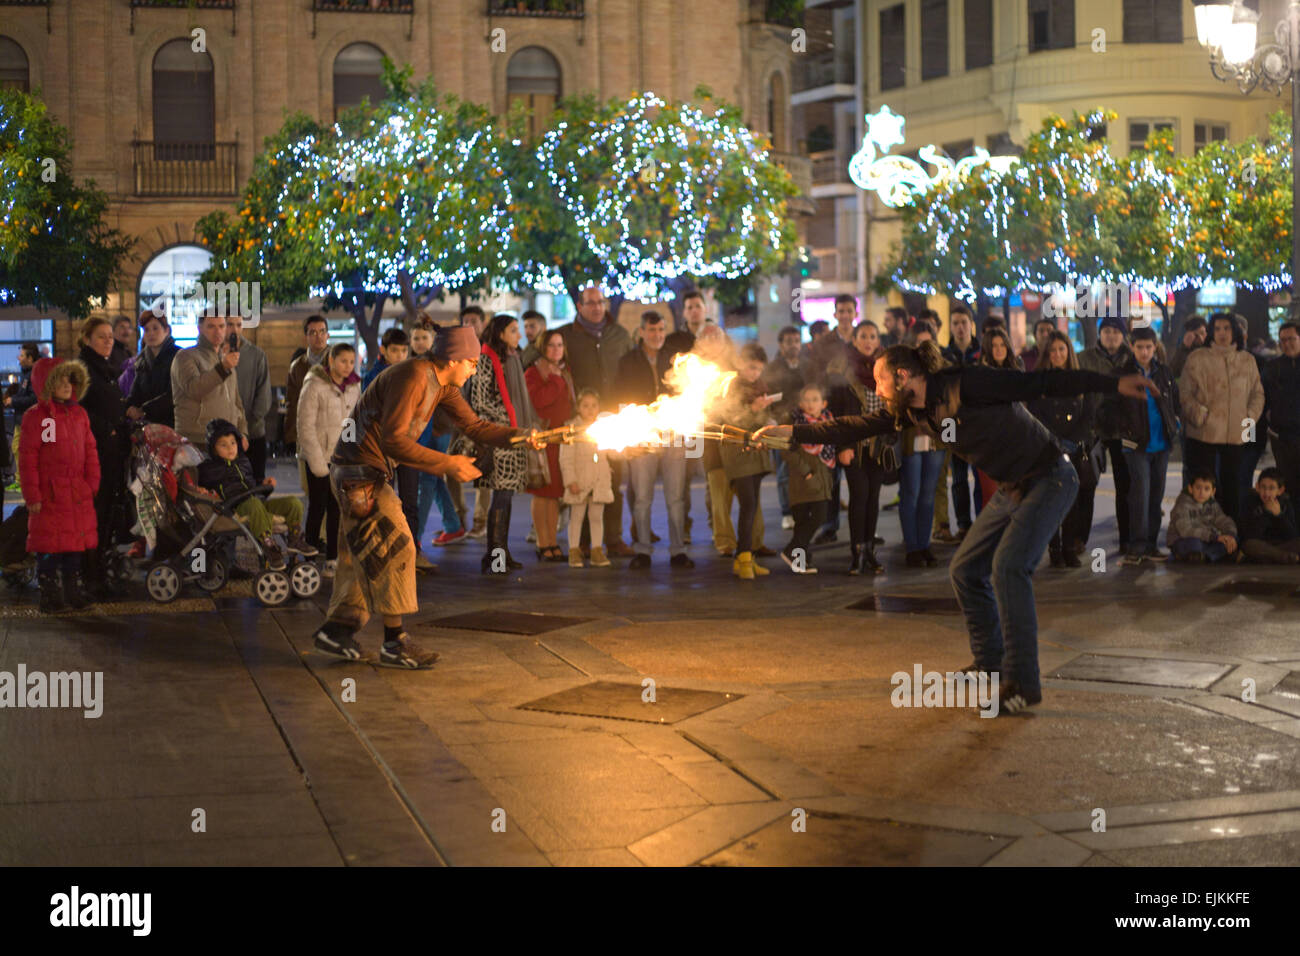 cordoba jan 4 a street entertainer playing fire torch in cordoba jan 4 a street entertainer playing fire torch in front of a large crowd of people on 4 2015 in cordoba